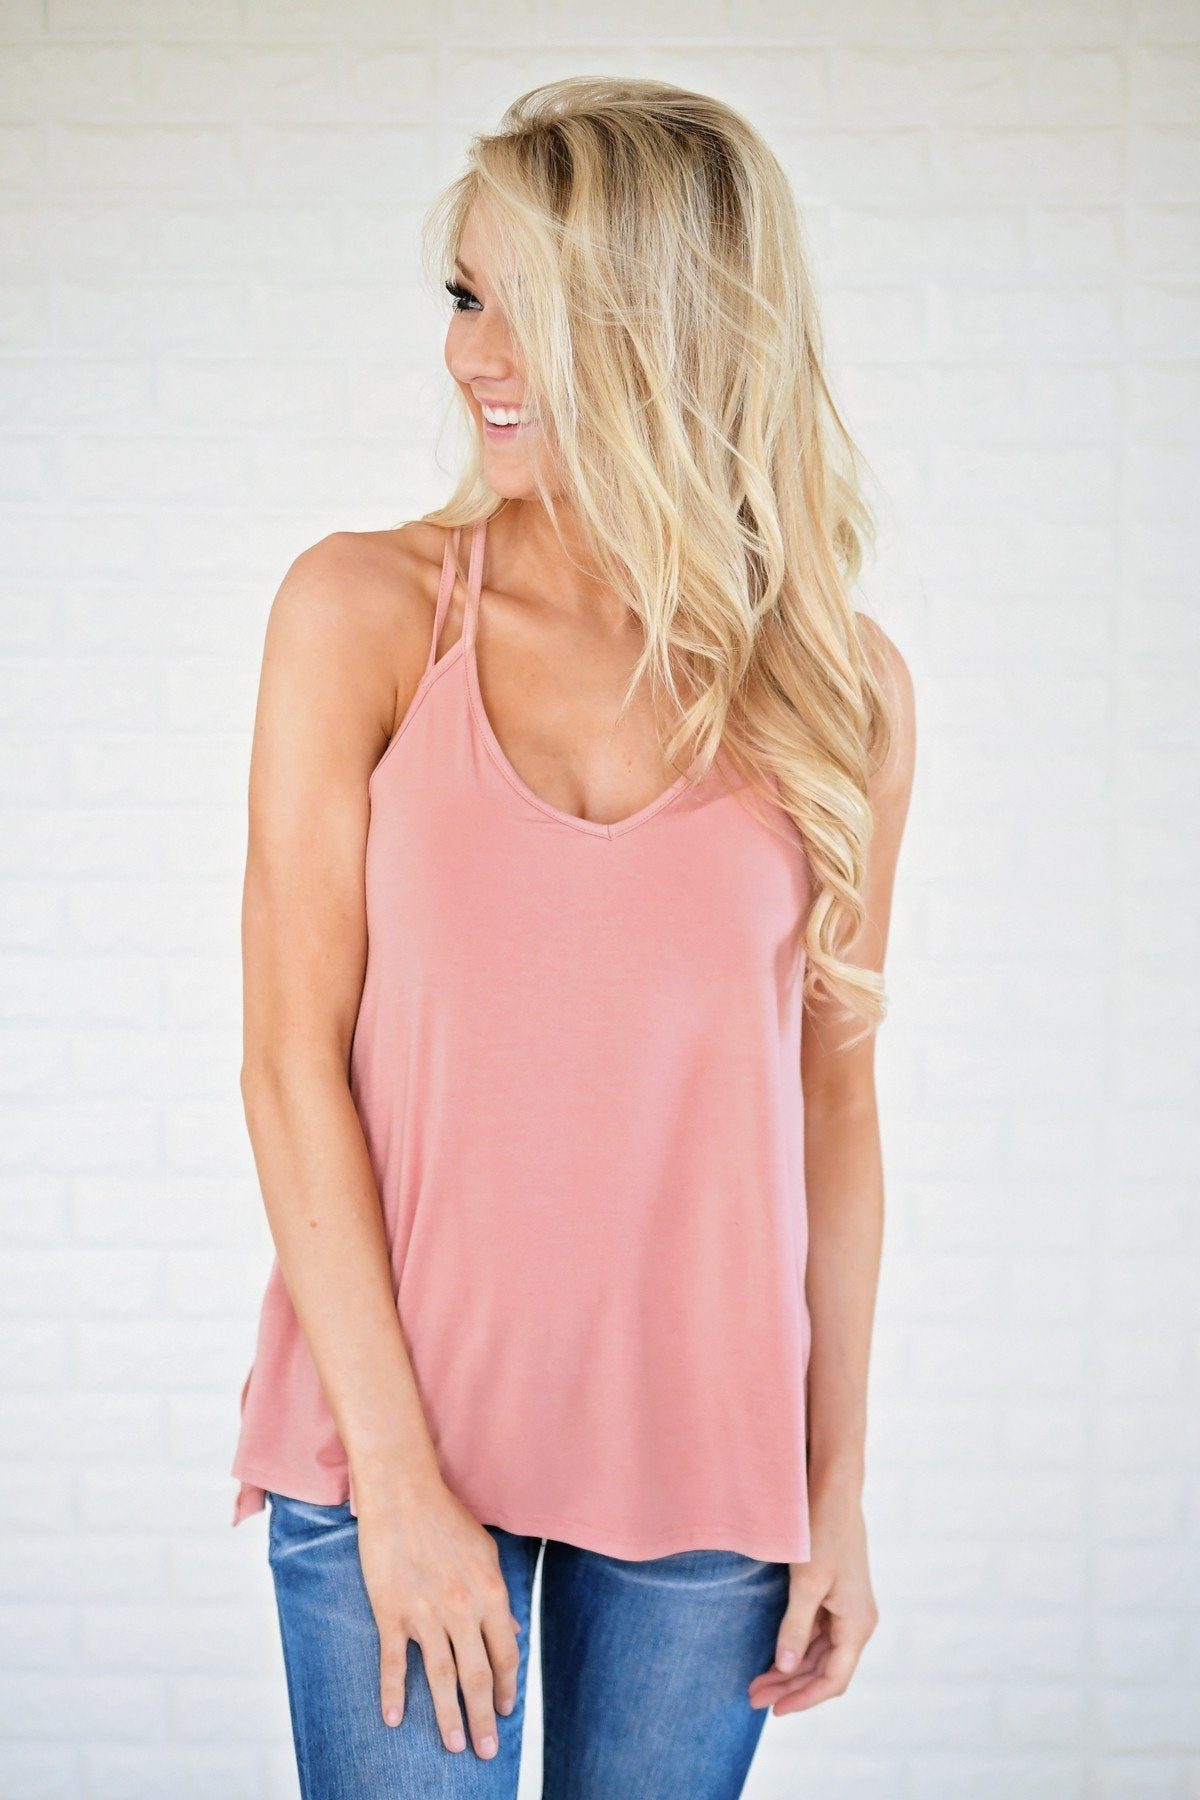 Peach Strappy Tank Top